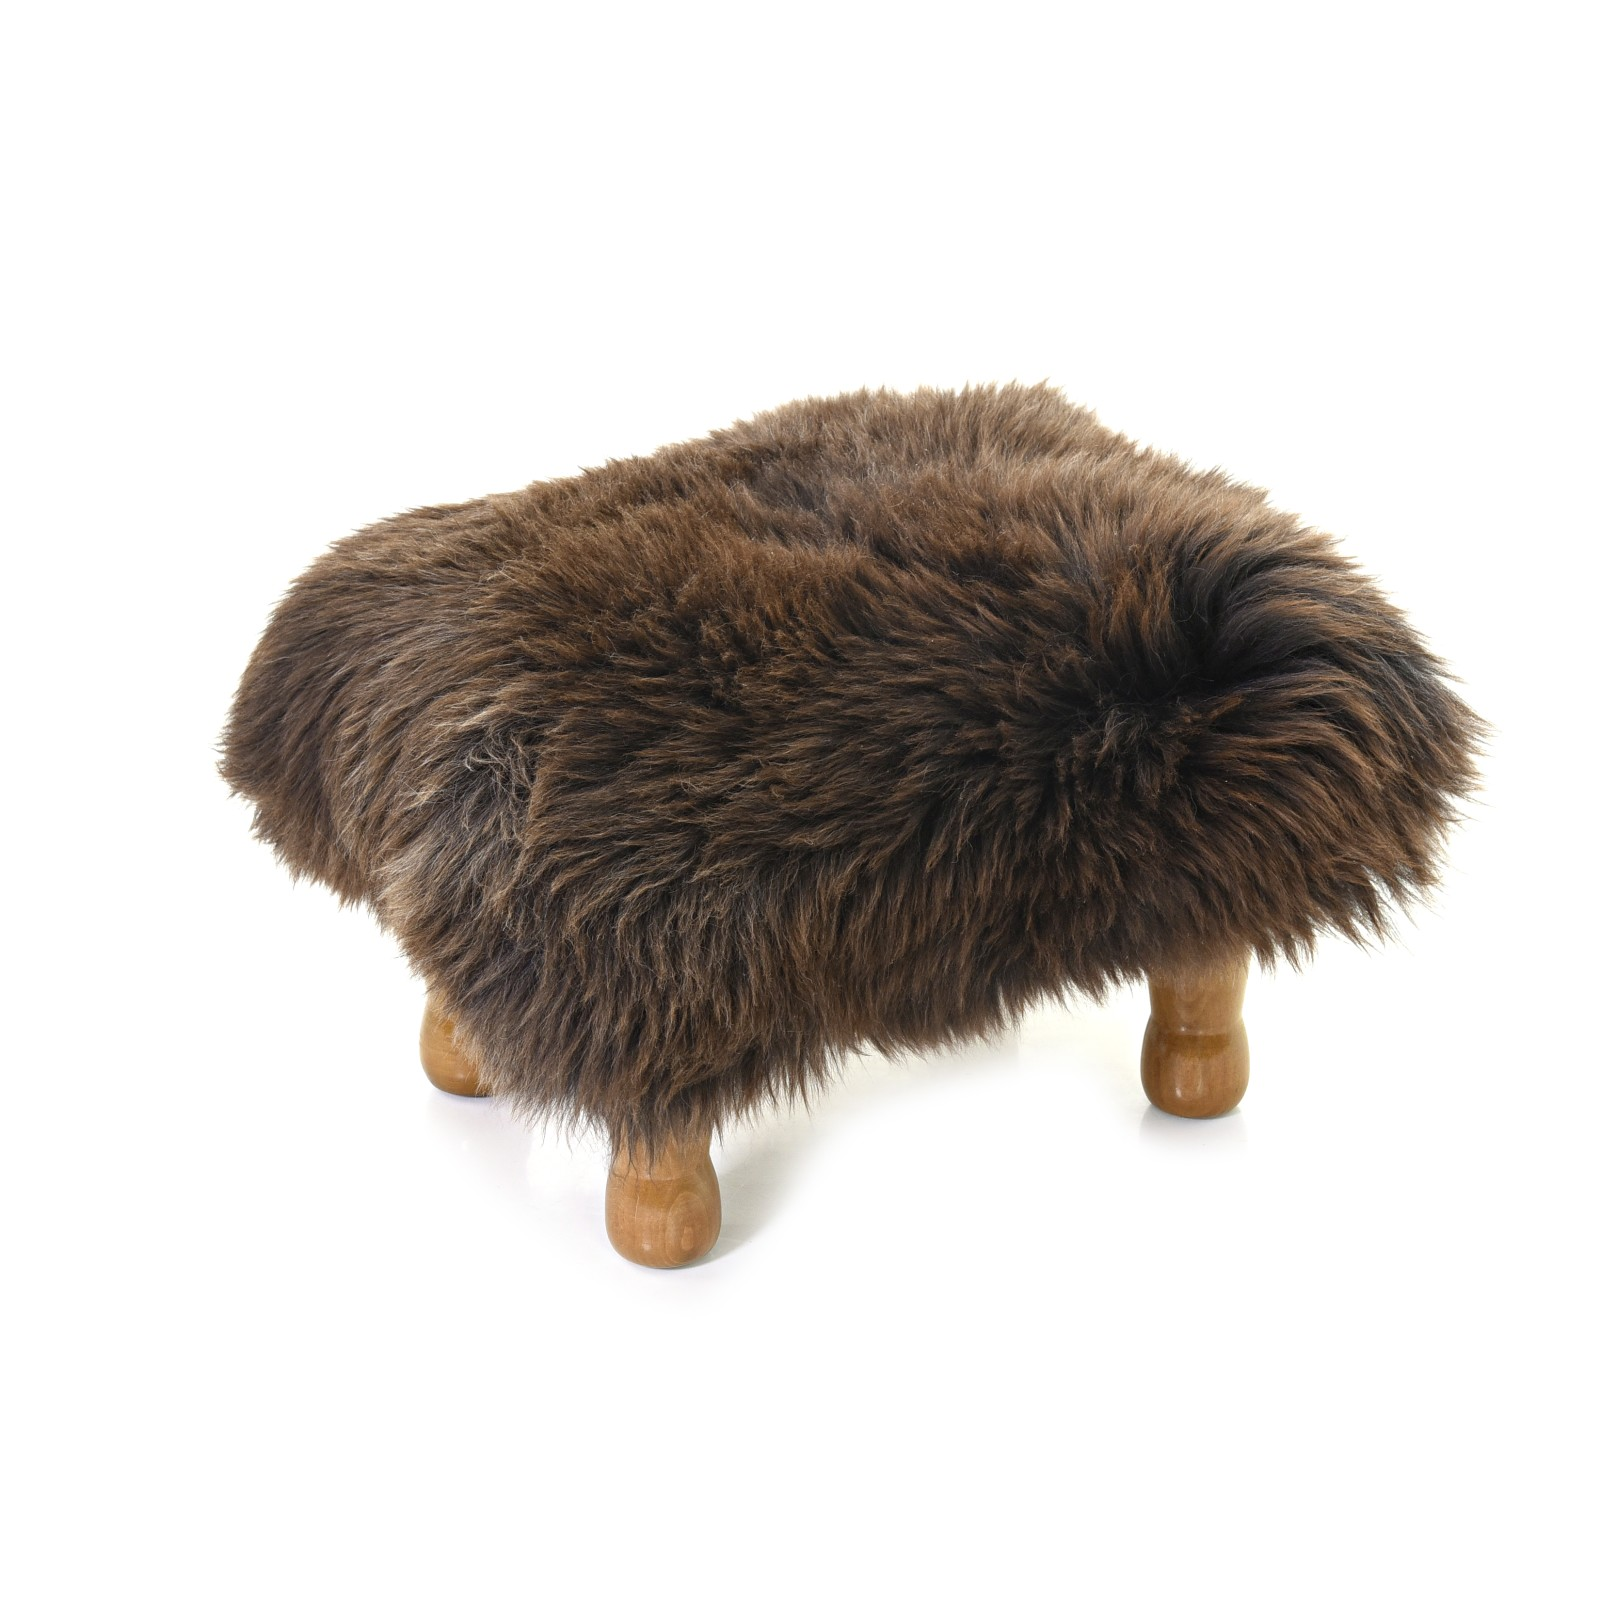 Anwen Sheepskin Footstool Chocolate